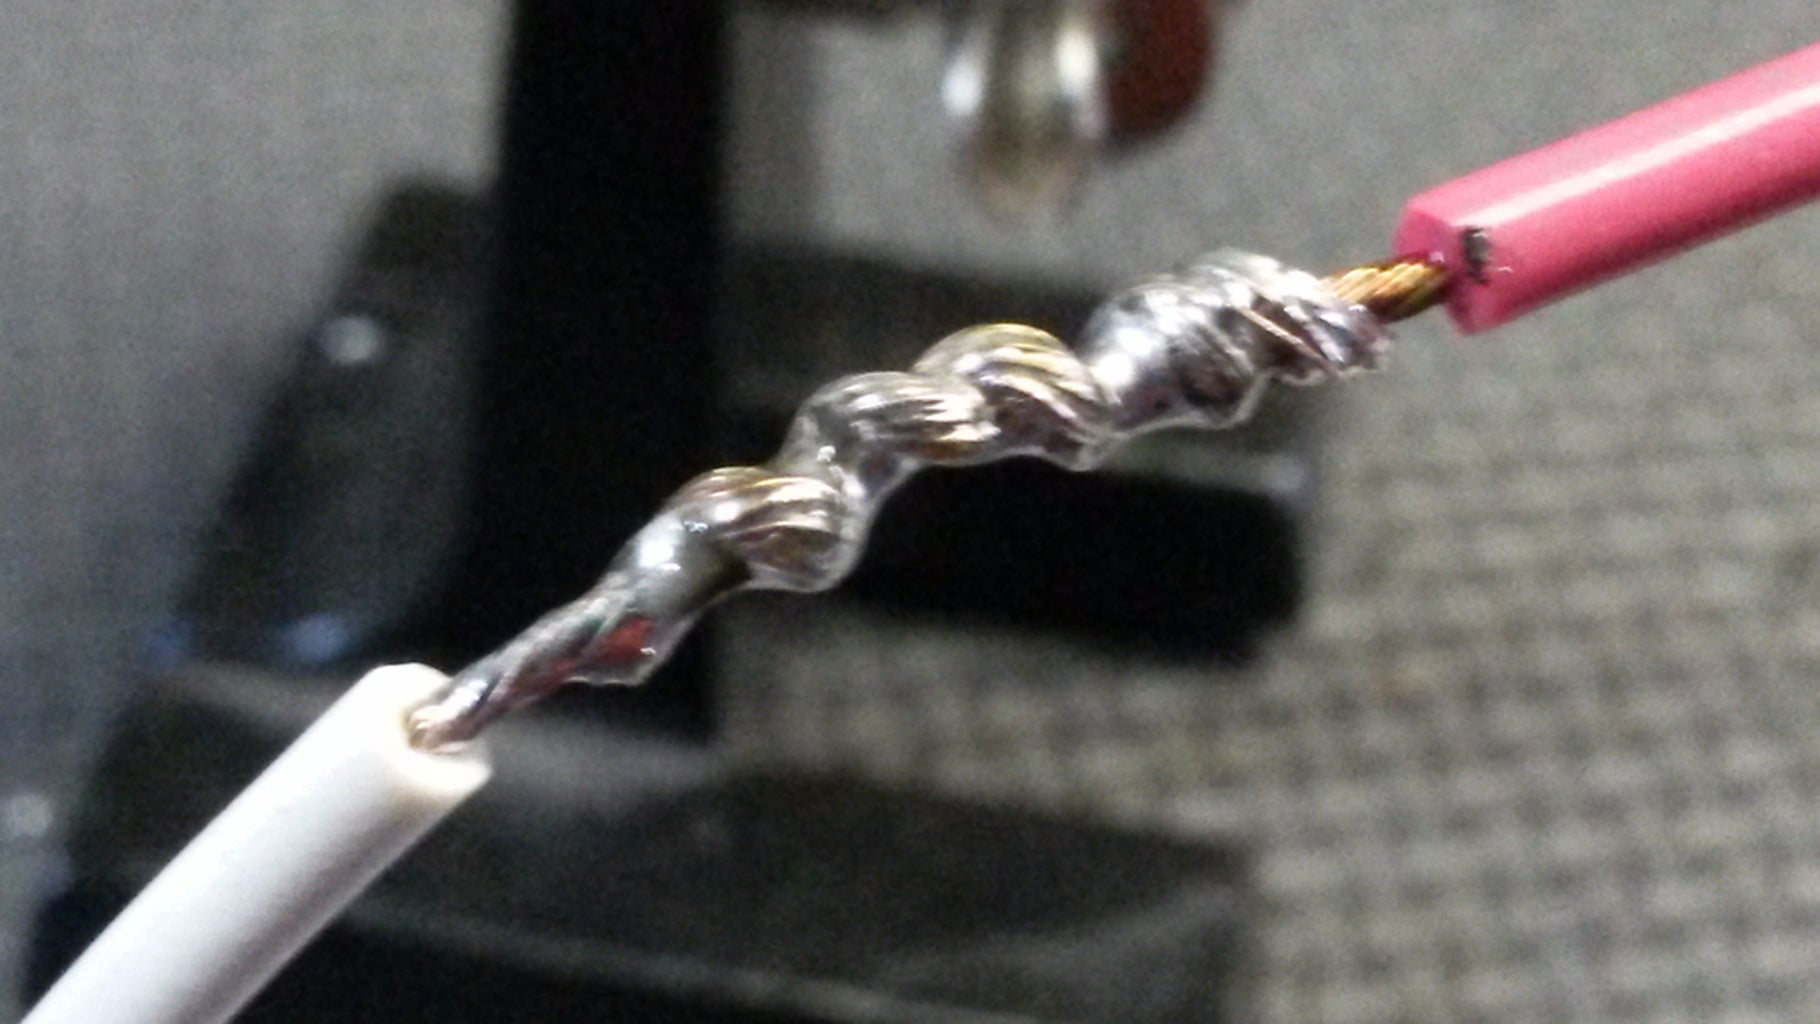 Soldering the Joint